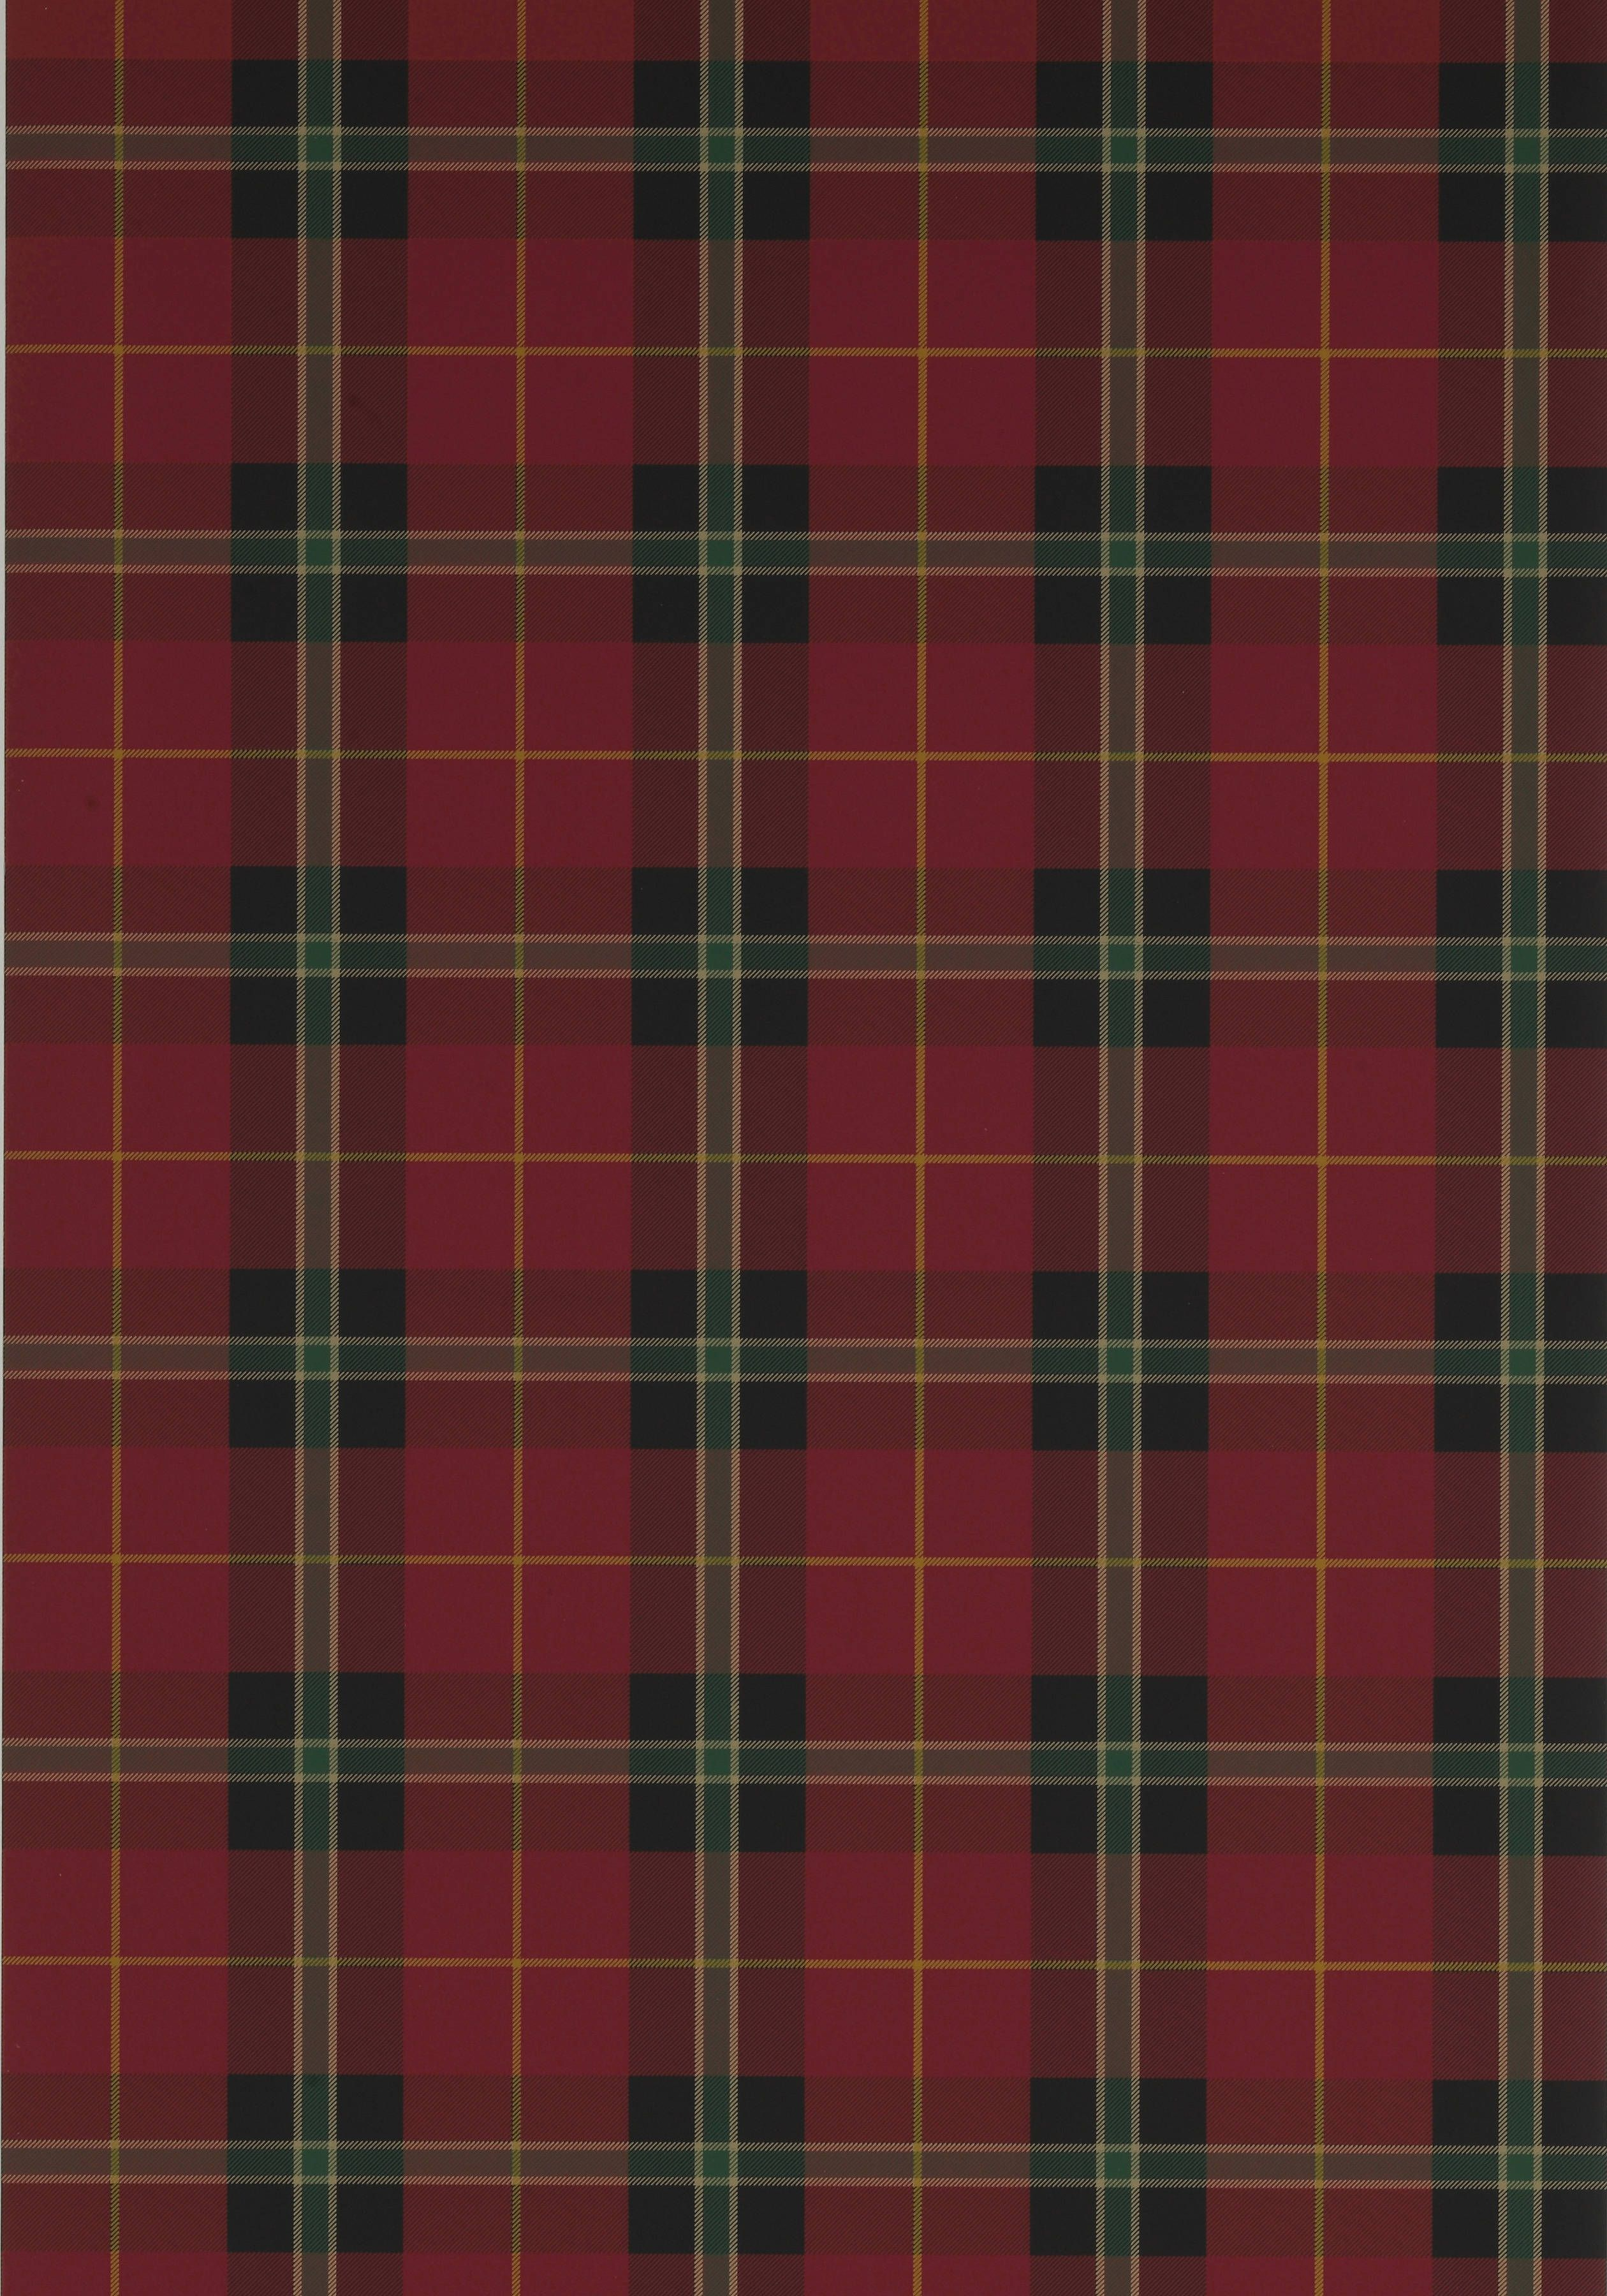 9a936017f51 WINSLOW PLAID, Red, T1029, Collection Menswear Resource from Thibaut ...